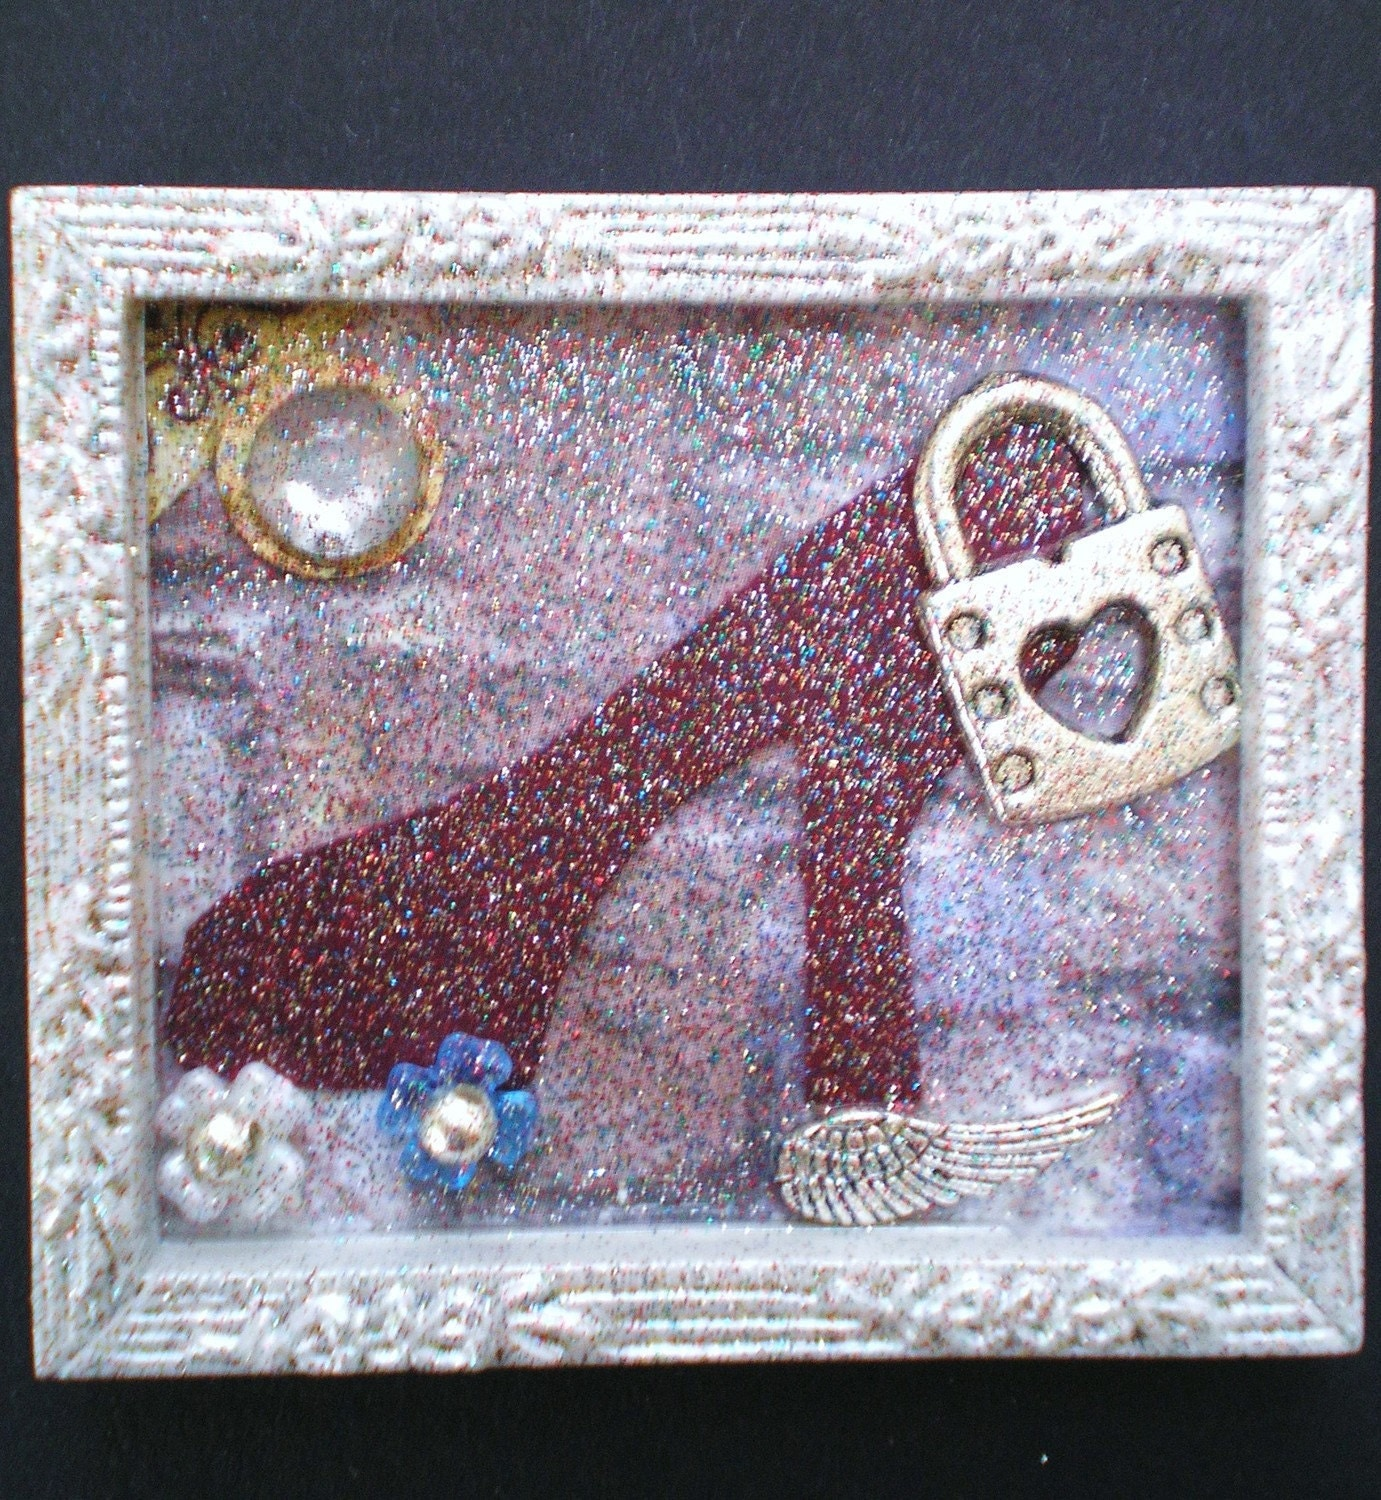 Long I Stood - Tiny Collage Mixed Media OOAK Framed Signed with Beads Silver Bird Charm Watch Parts